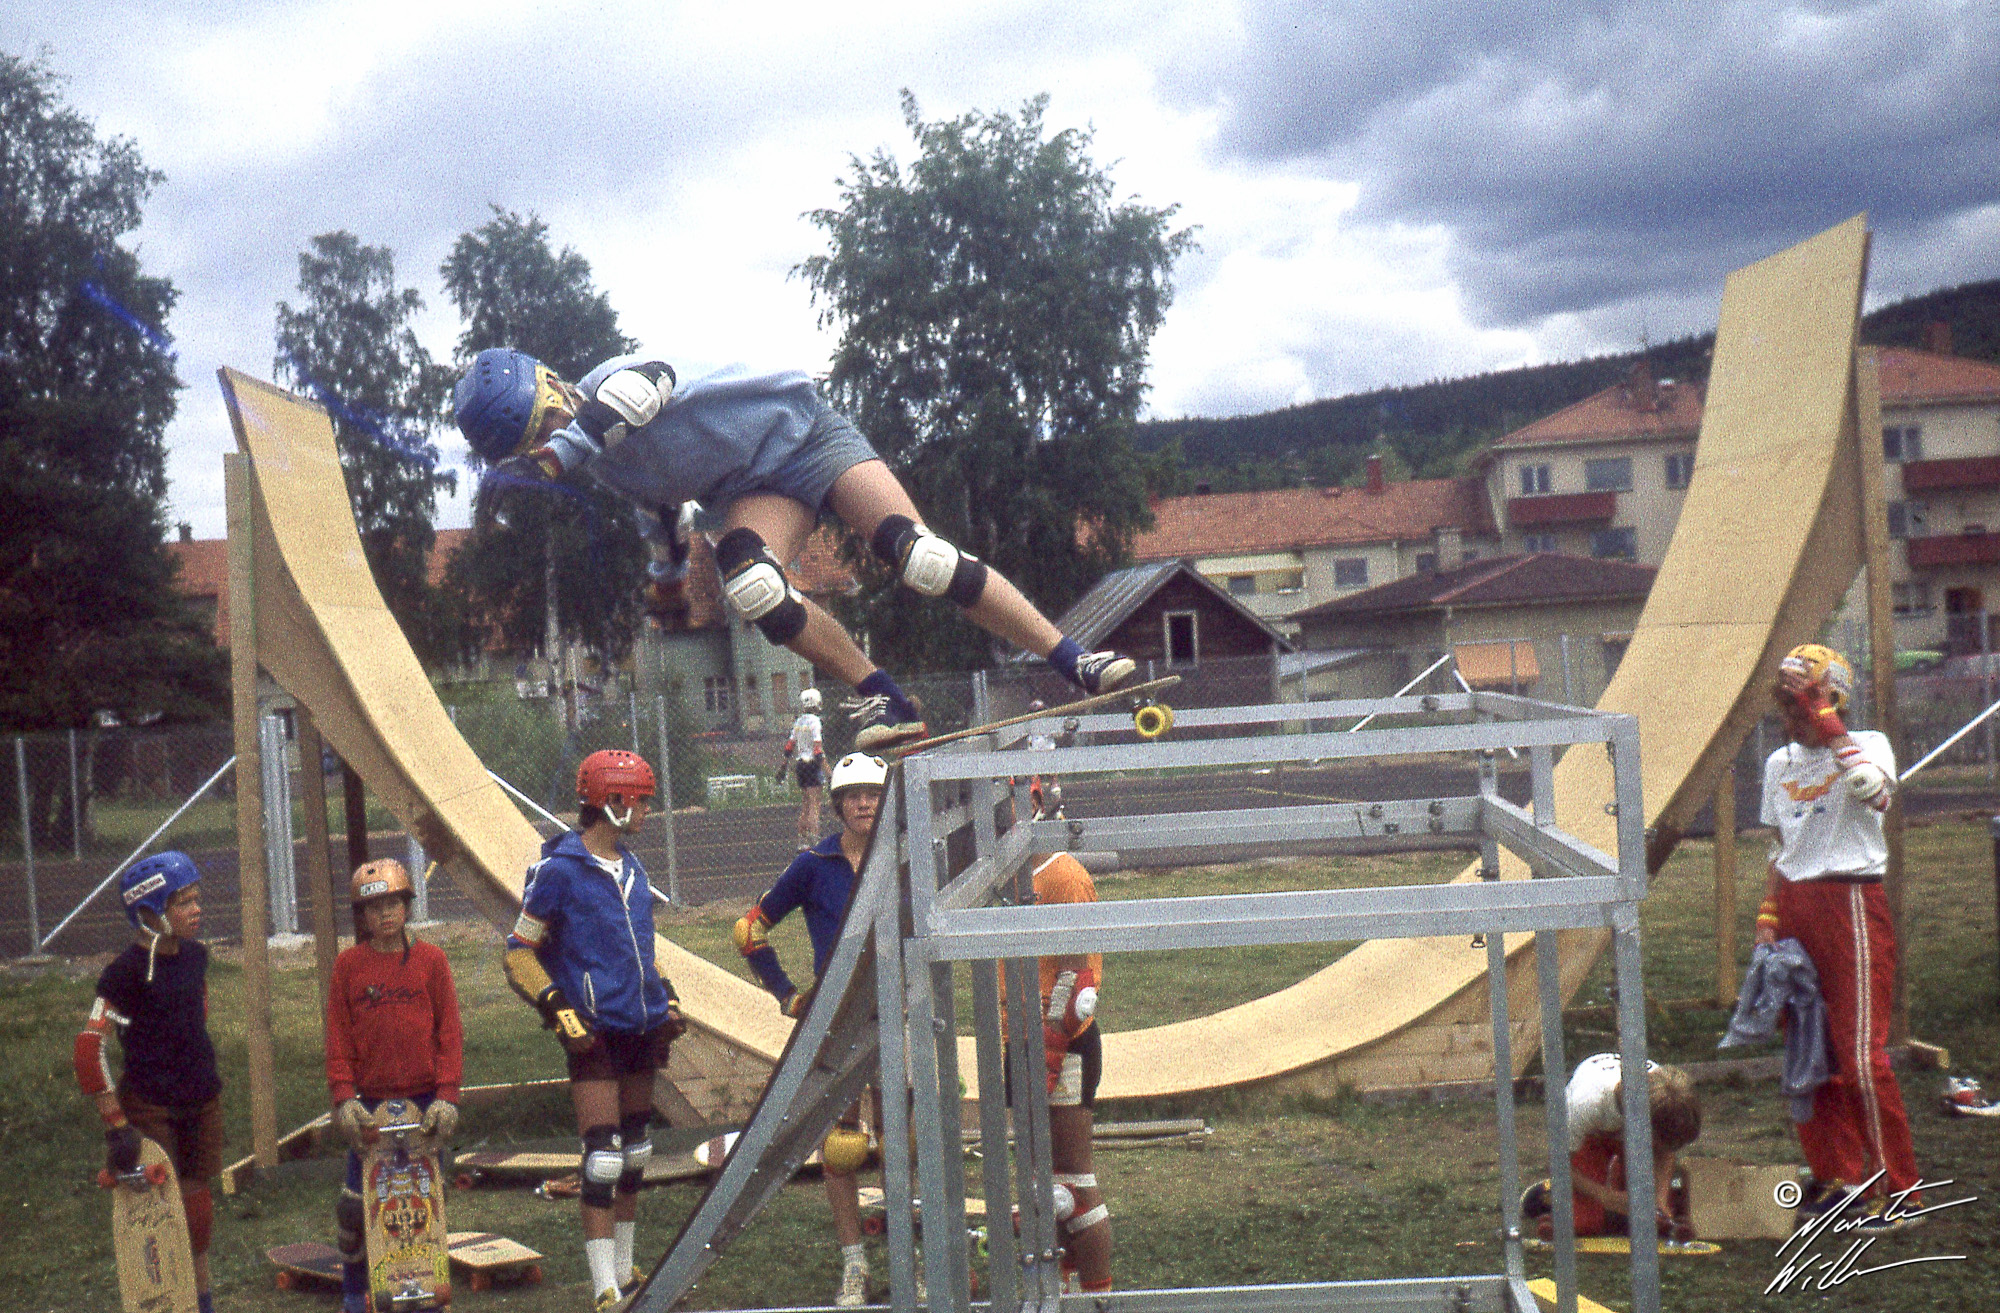 Fredrik Koch, Rock 'n roll, Eurocana Summer Camp 1979